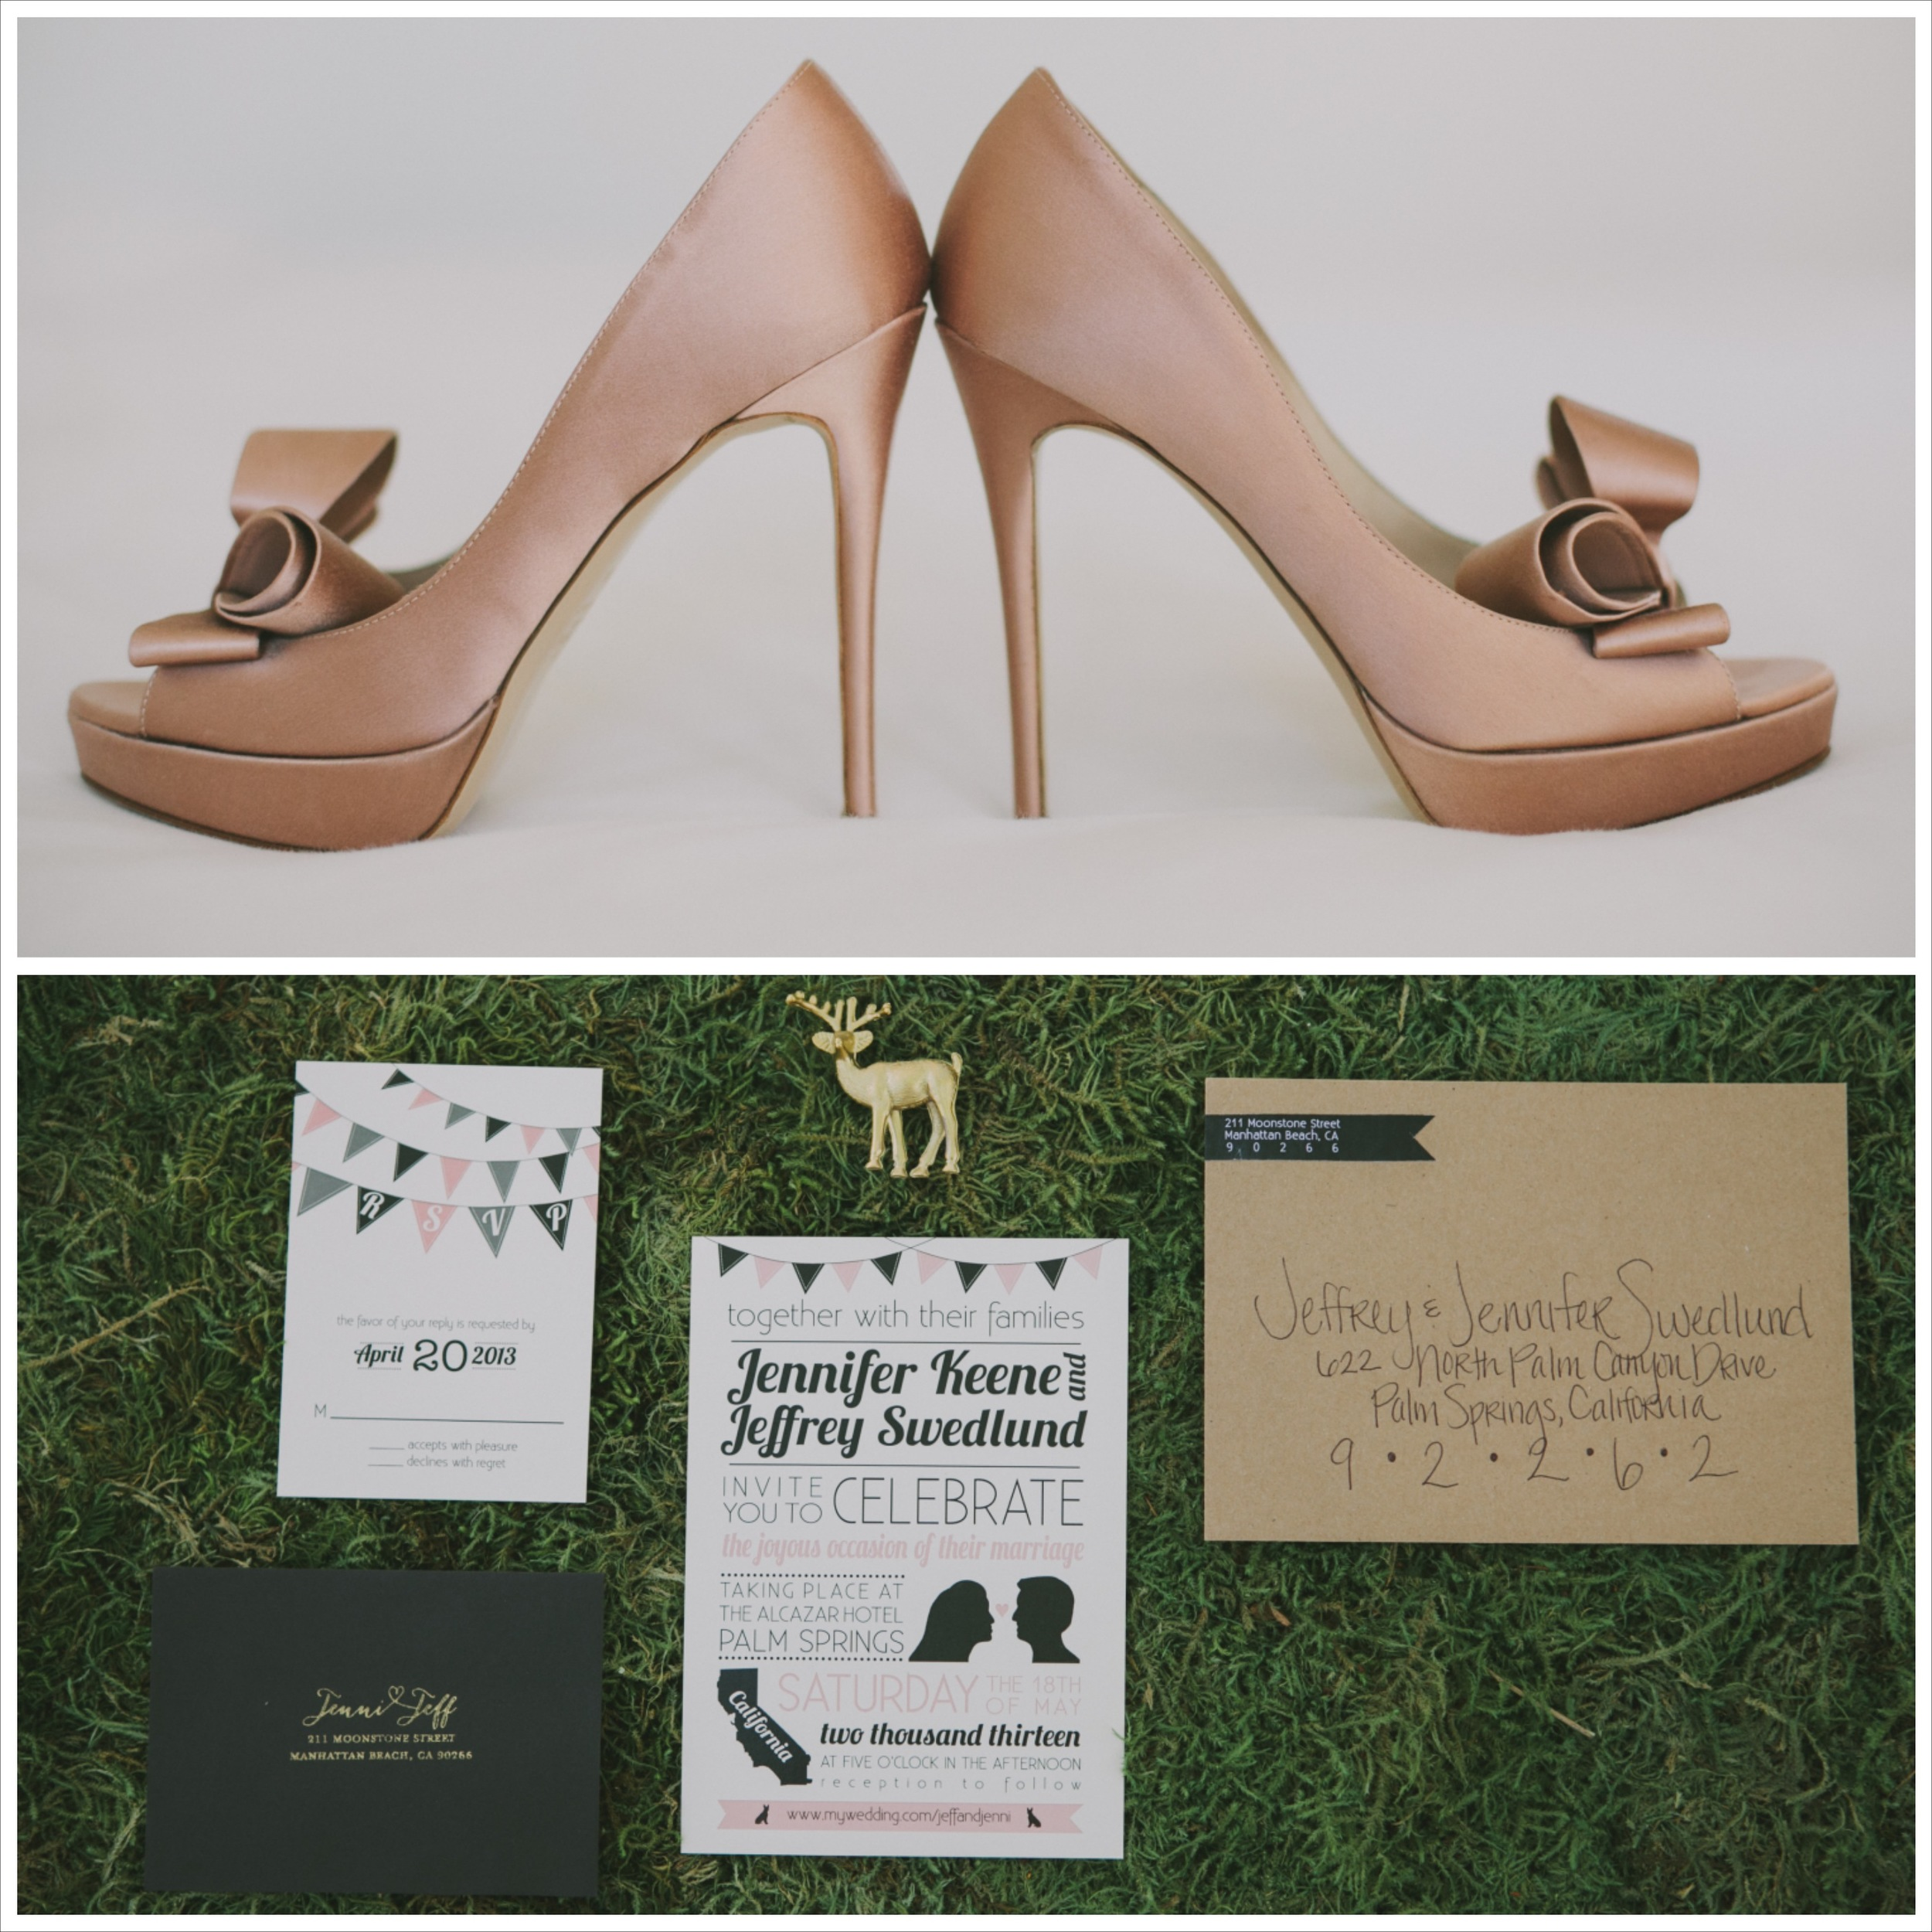 Valentino wedding shoes and invitation suite for Winifred Bean real bride Jenni's Palm Springs wedding